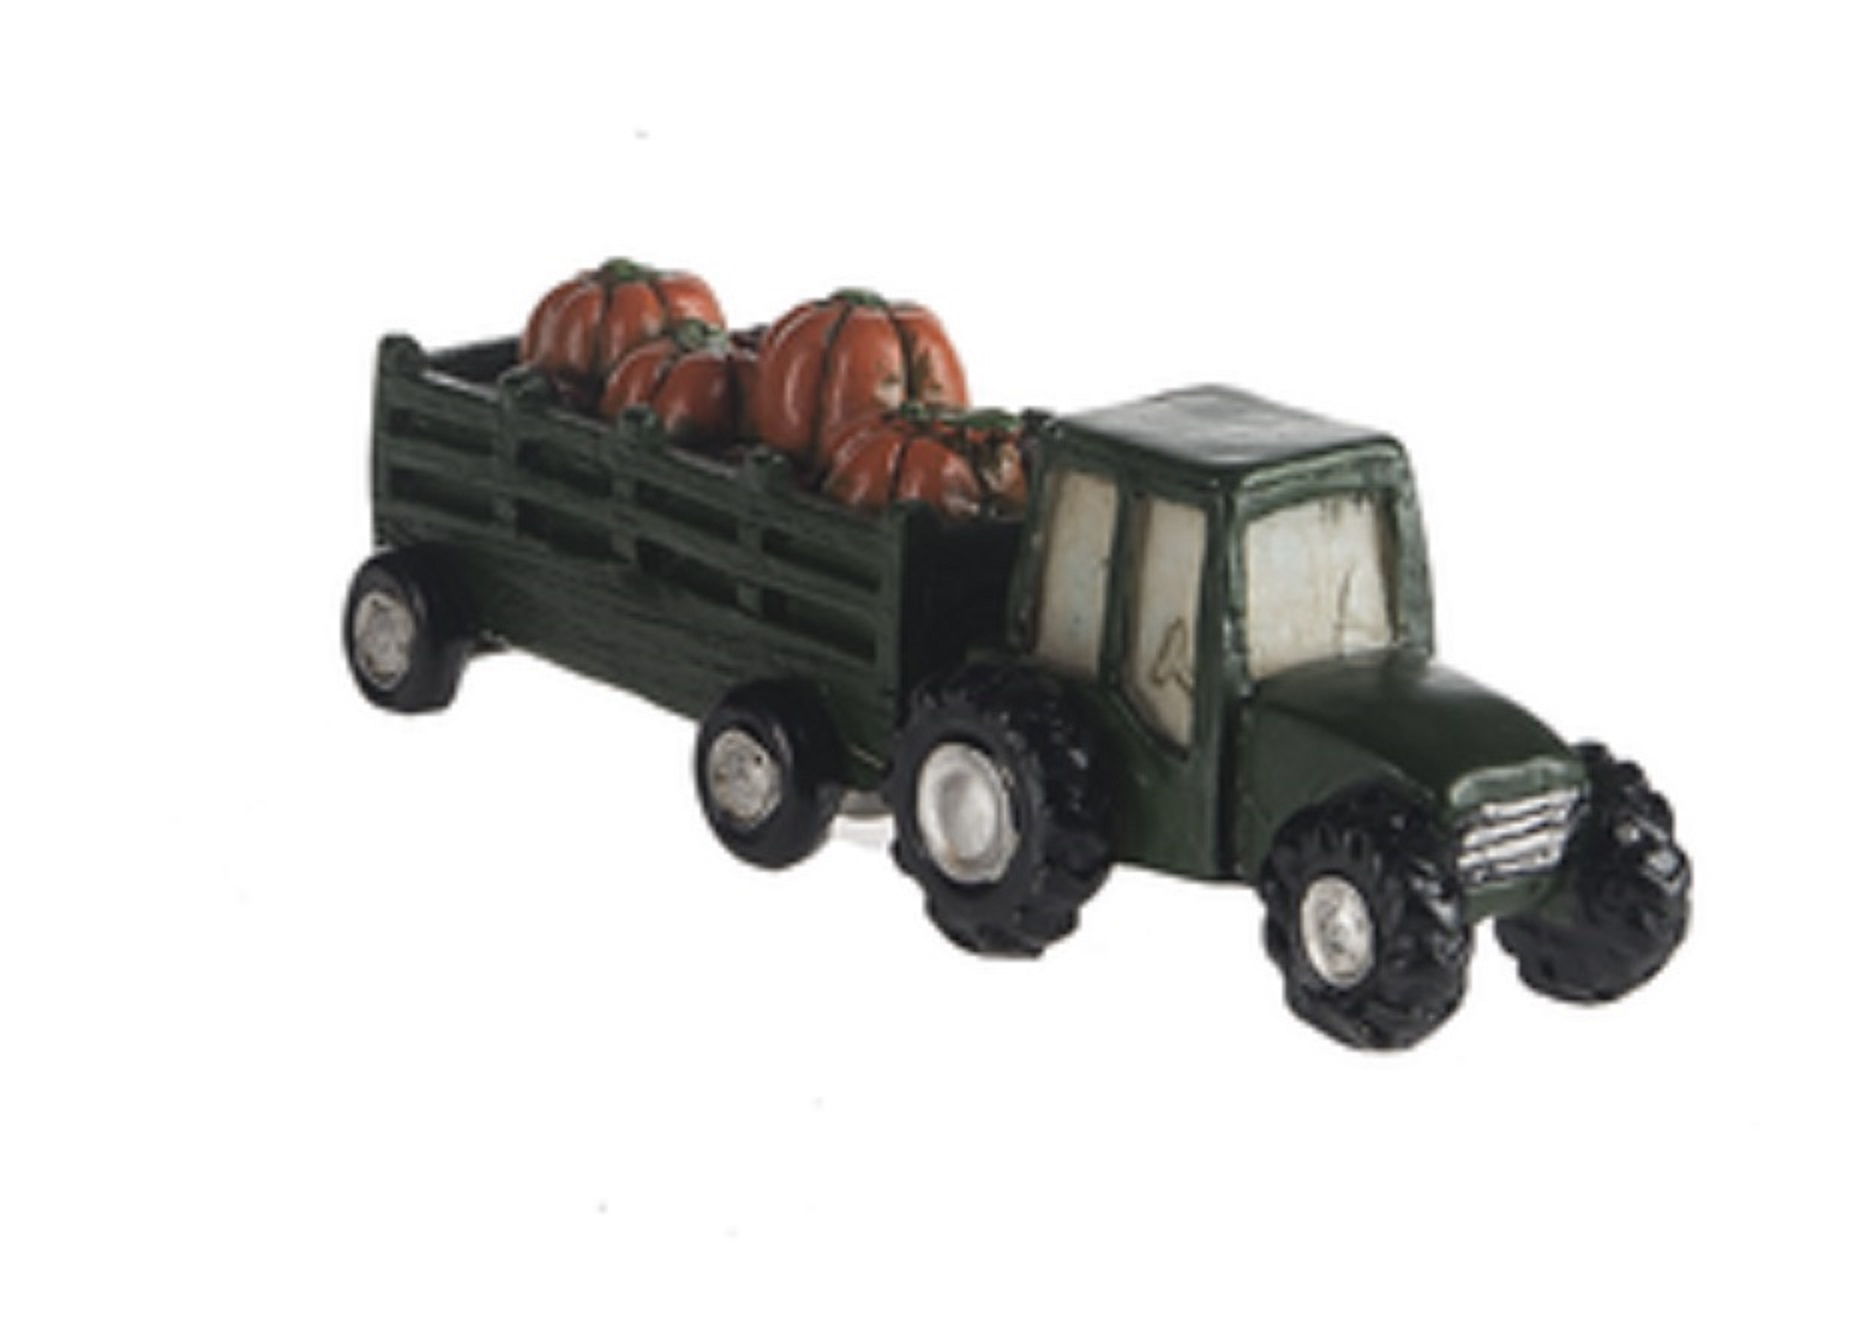 Black Tractor With Pumpkin Filled Trailer Figure By Ganz by